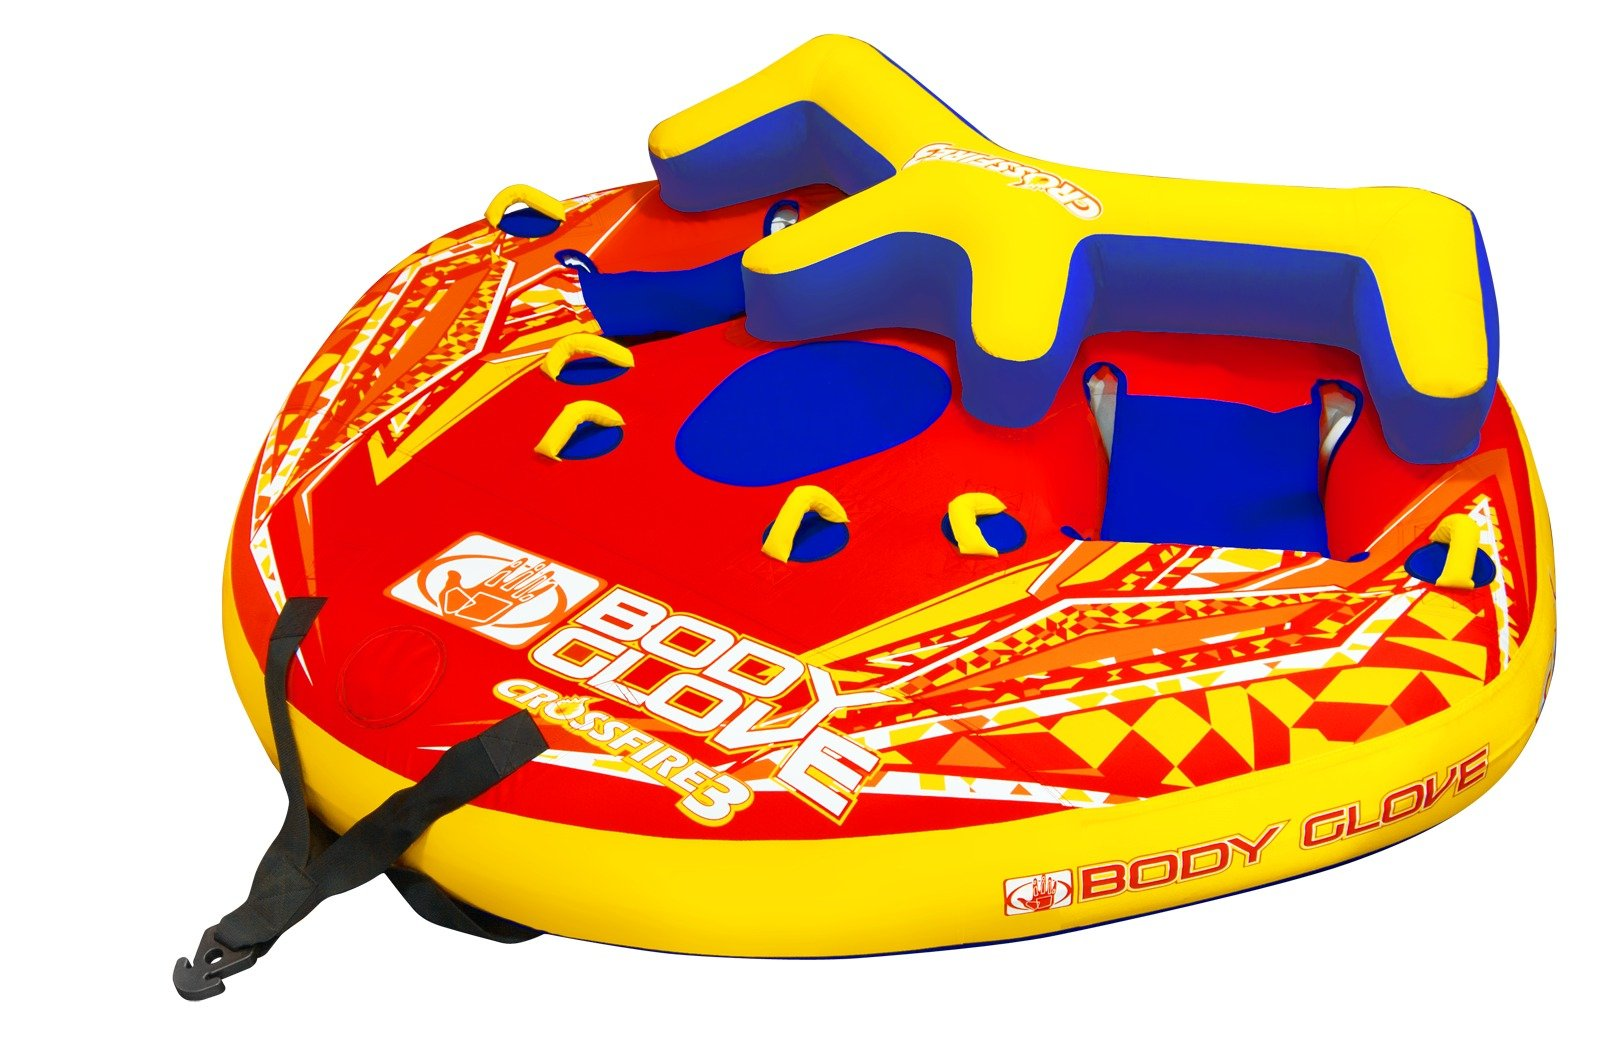 Body Glove 15542 Cross Fire 3 Inflatable 3 Person Towable by jetpilot